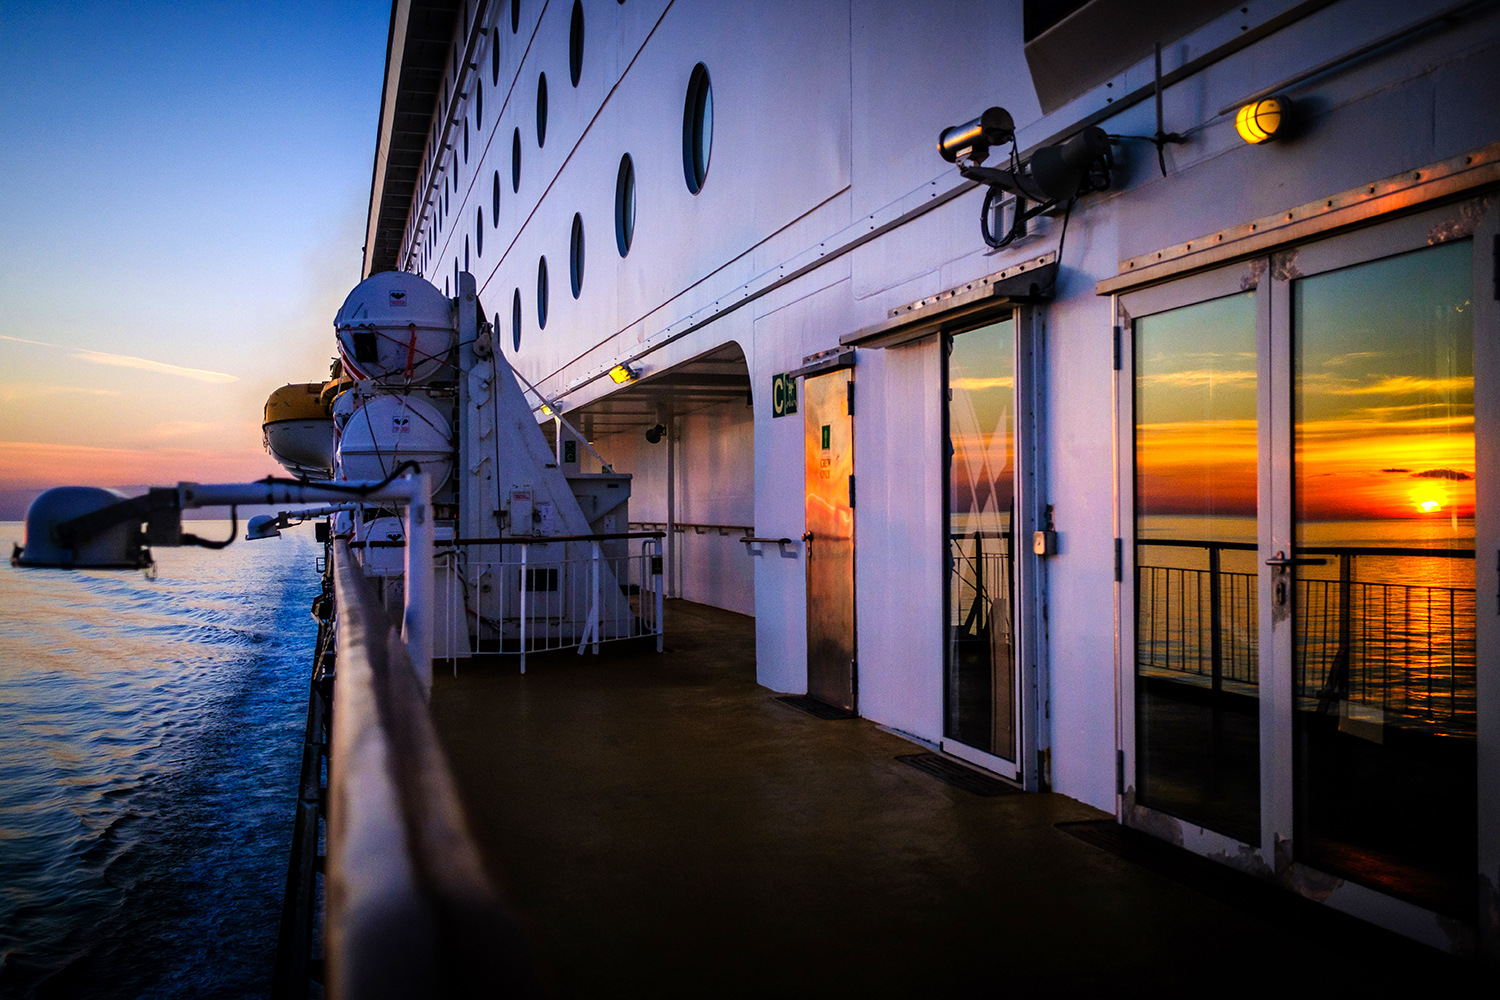 Sunset Colorline ferry- Norway